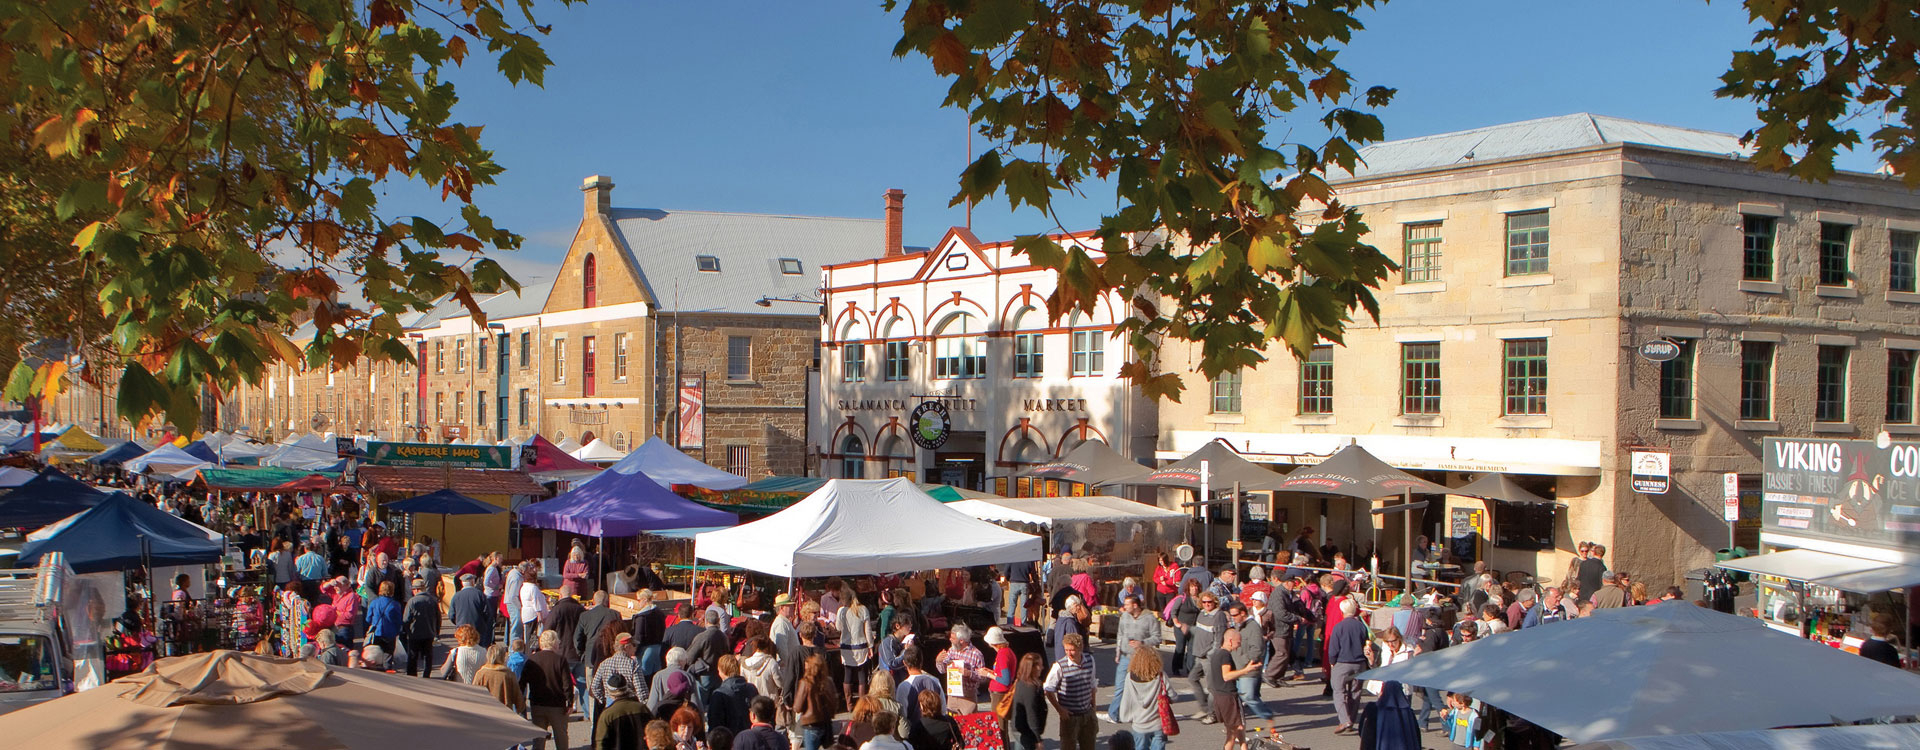 Salamanca Markets and restaurants are an easy 15 – 20 min walk from Grosvenor Court Apartments